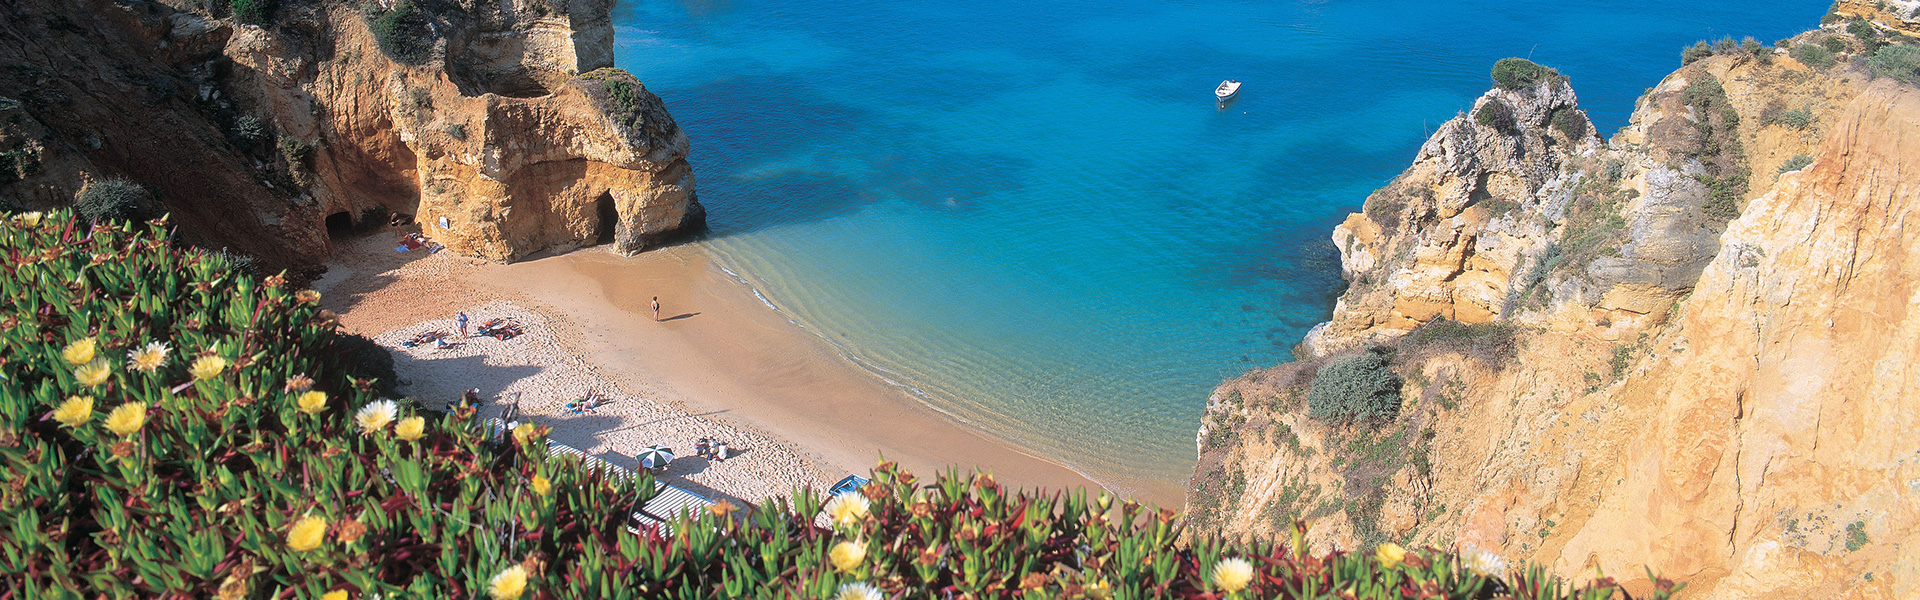 Holiday Lastminute Algarve Badebucht